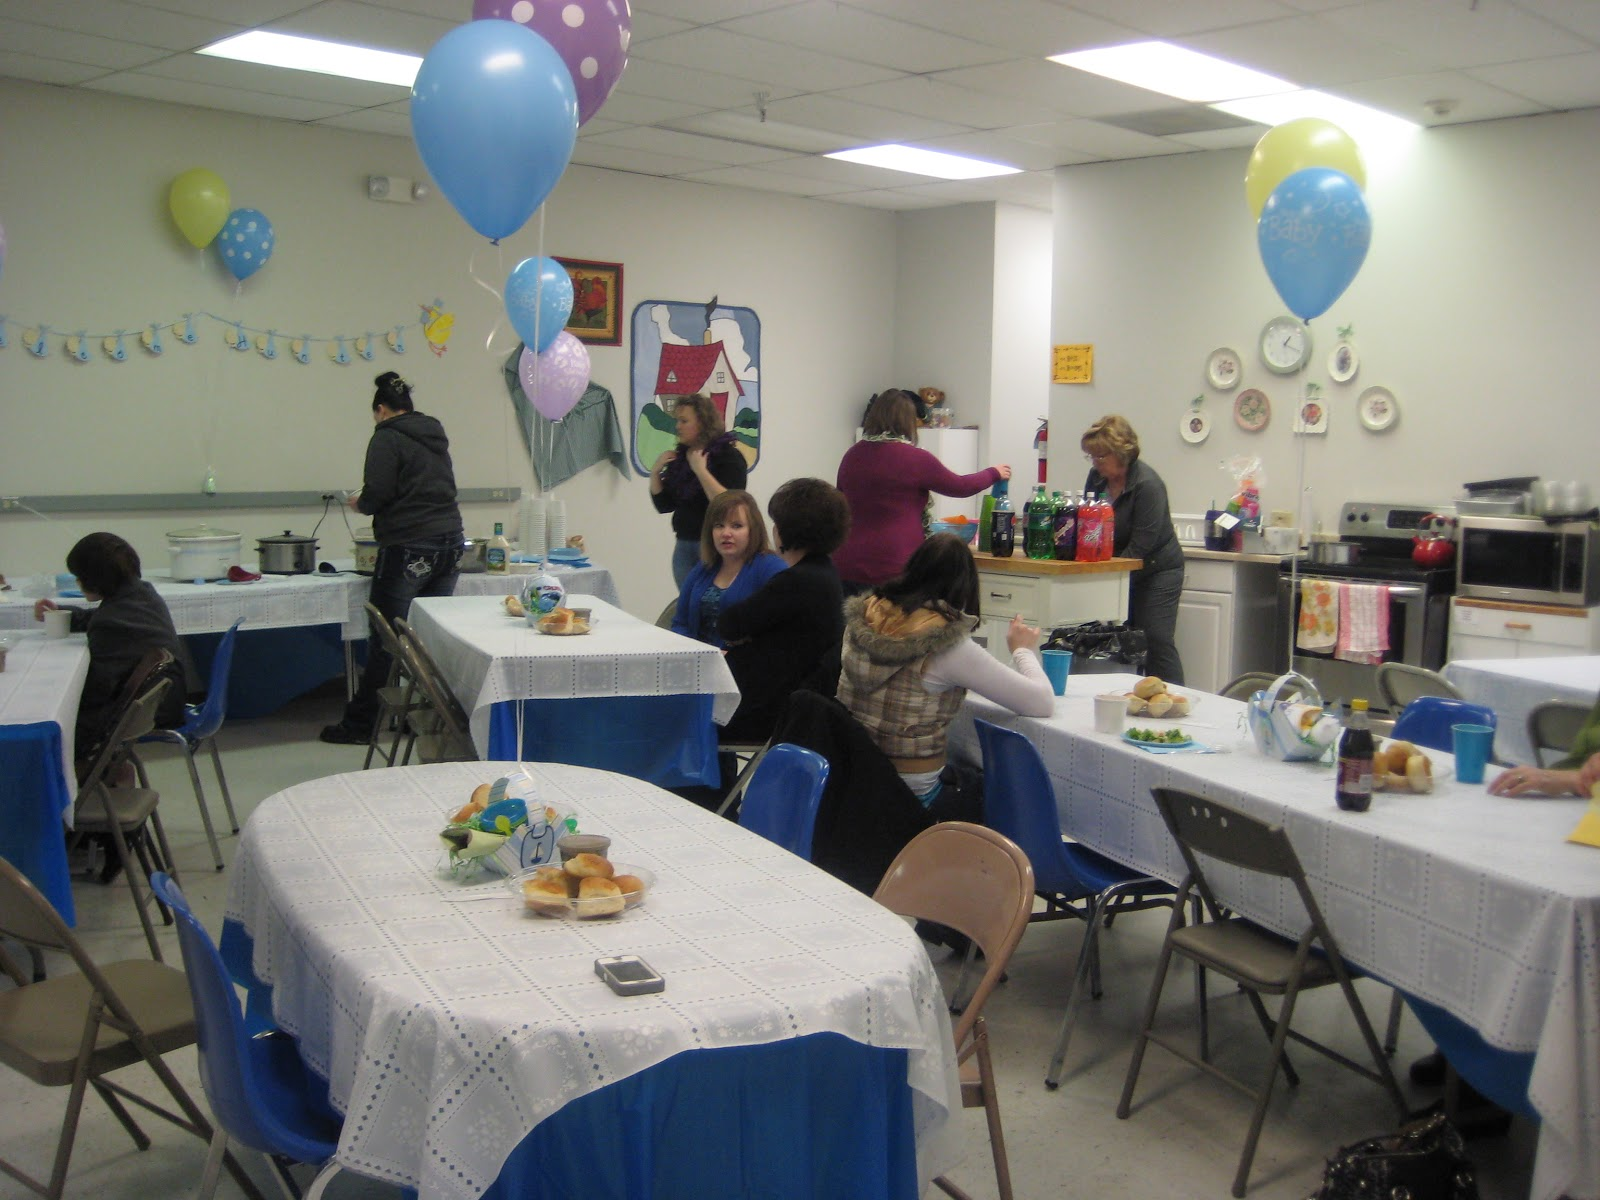 we resently had a baby shower and here are some of the pictures